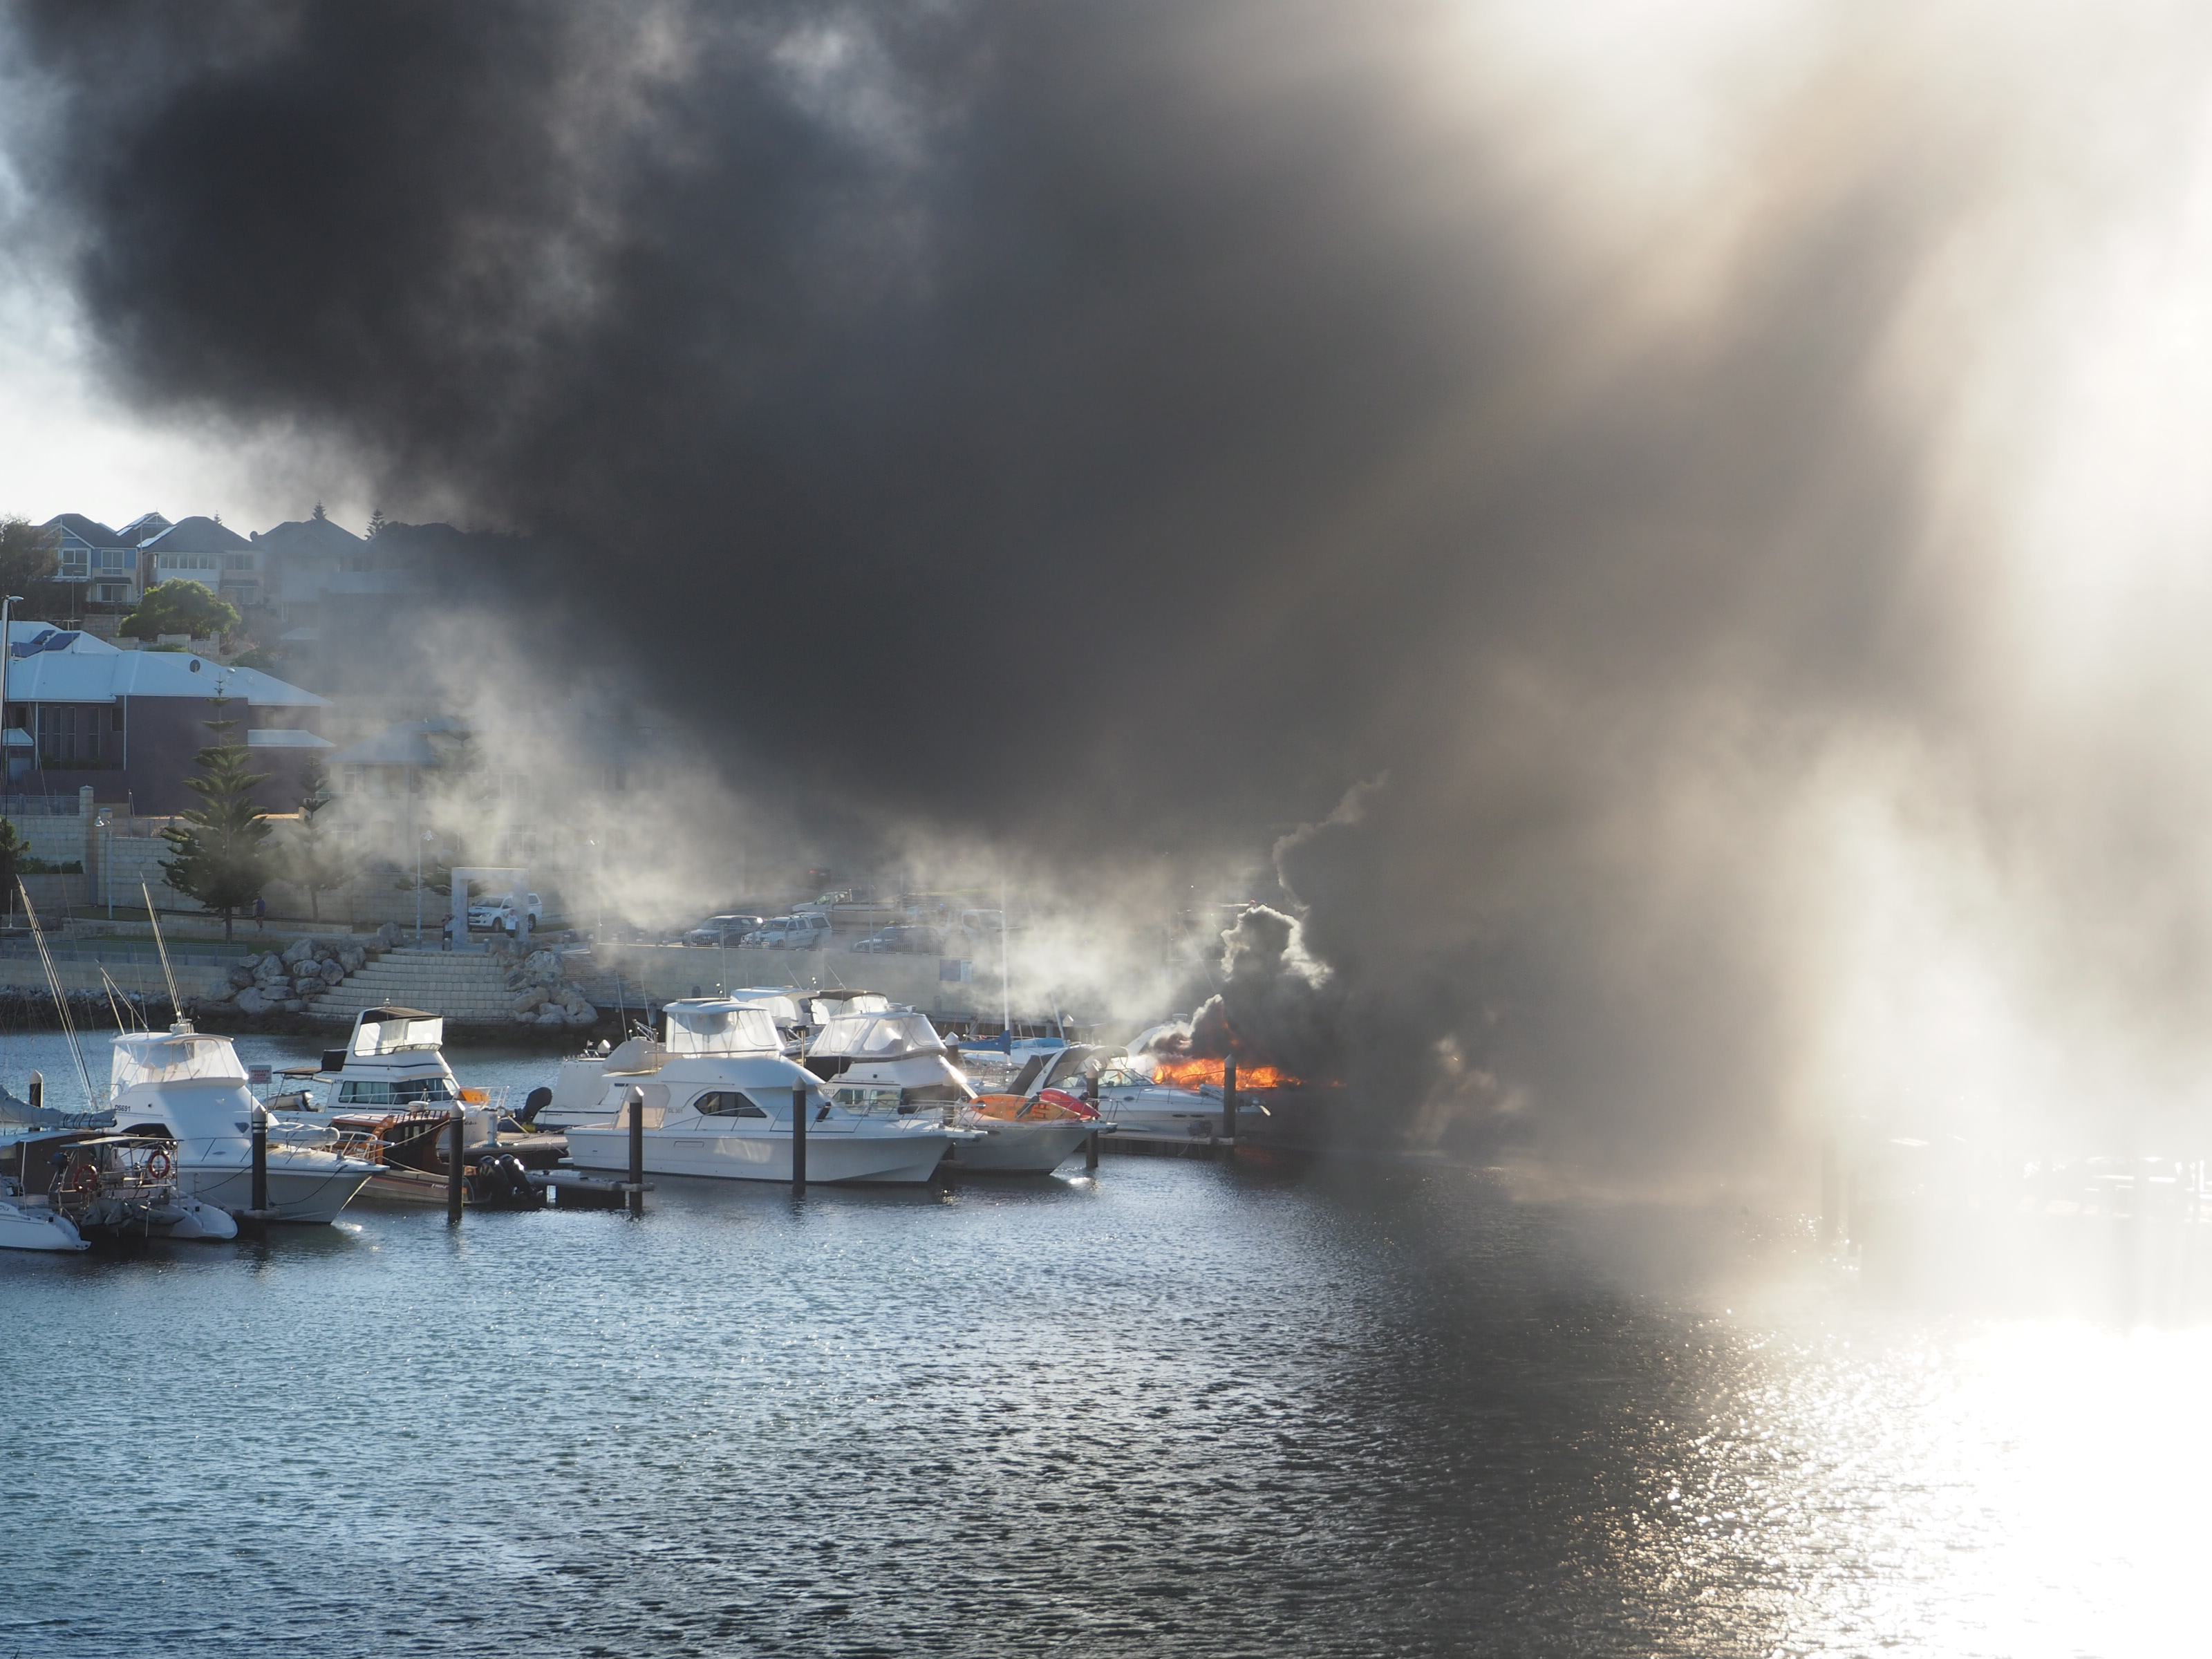 The vessel ablaze at Mindarie Marina. Pictures: Ian Goodenough.